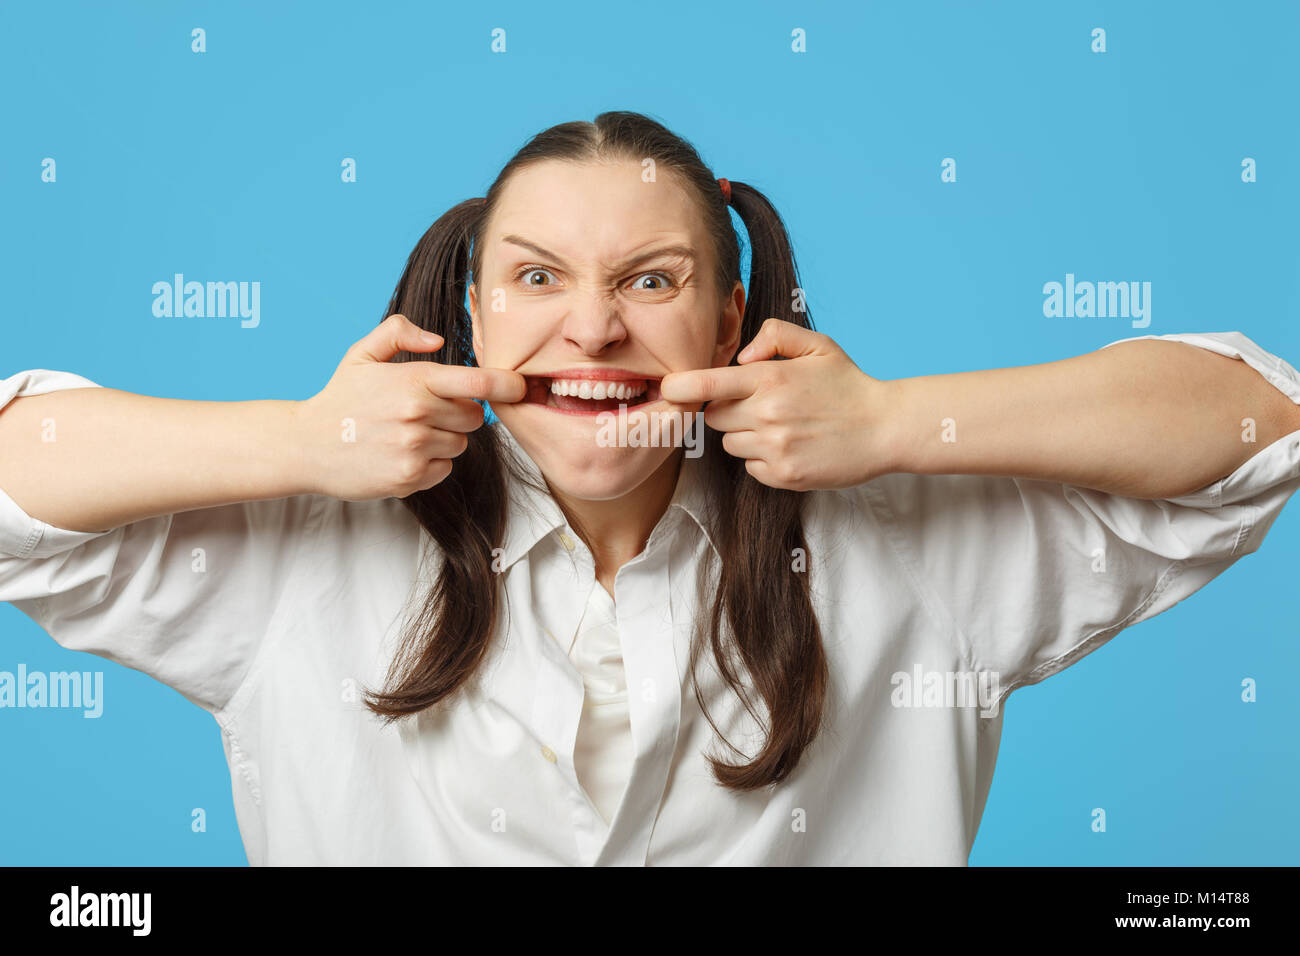 fun woman grimacing shows her teeth on blue background - Stock Image